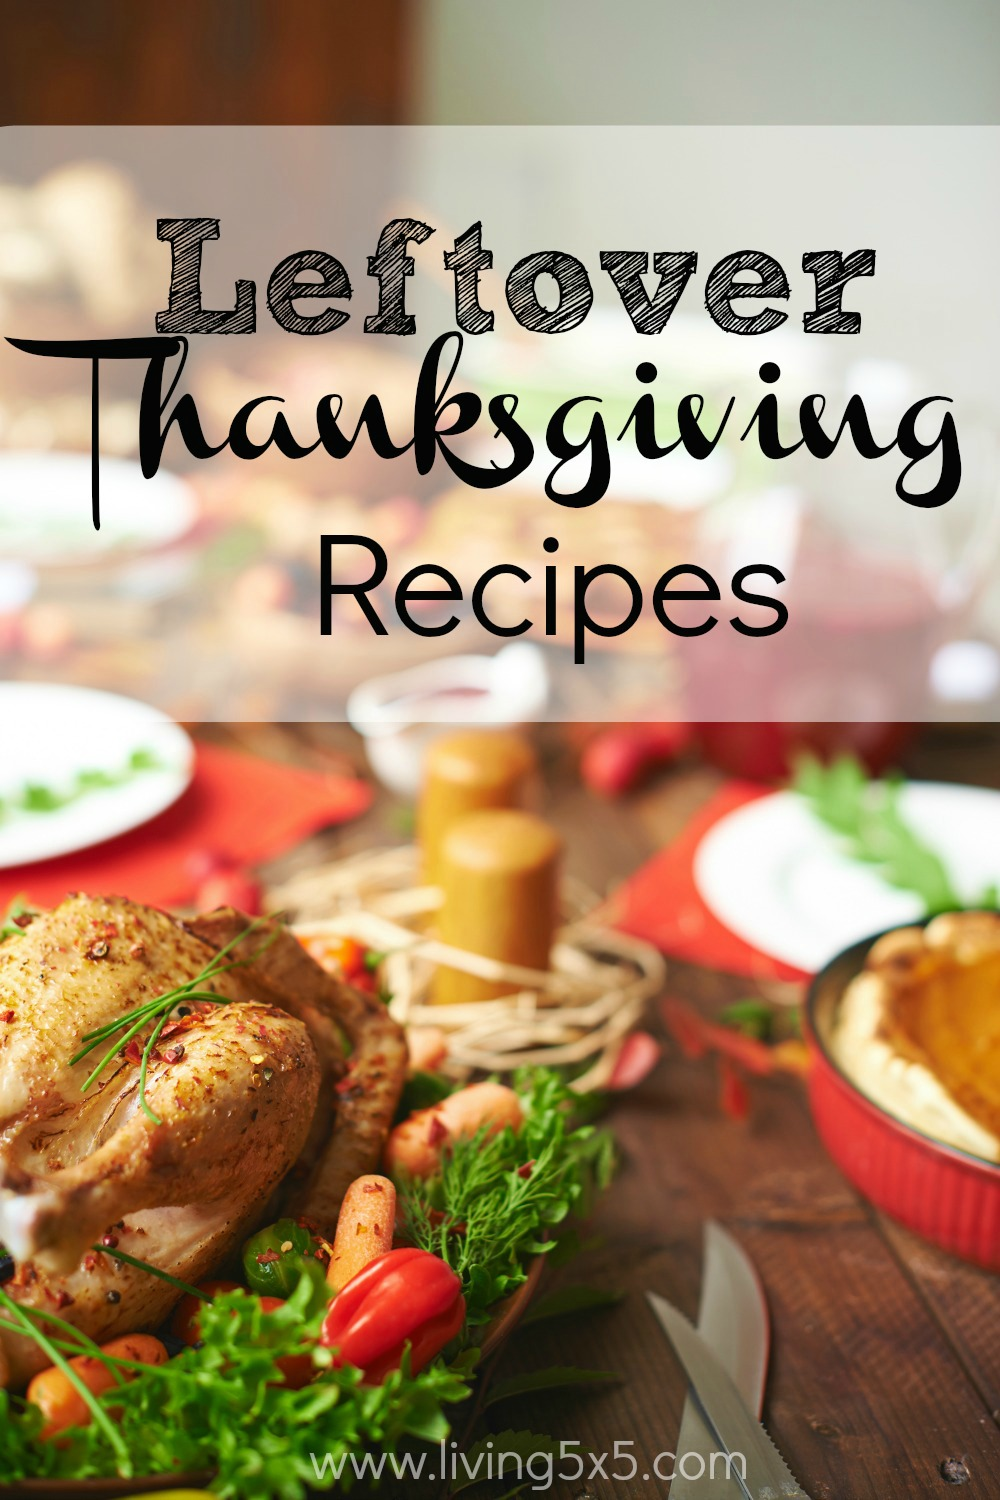 Turn your leftover Thanksgiving dinner into these delicious leftover Thanksgiving recipes for the next few days! You will not be disappointed.